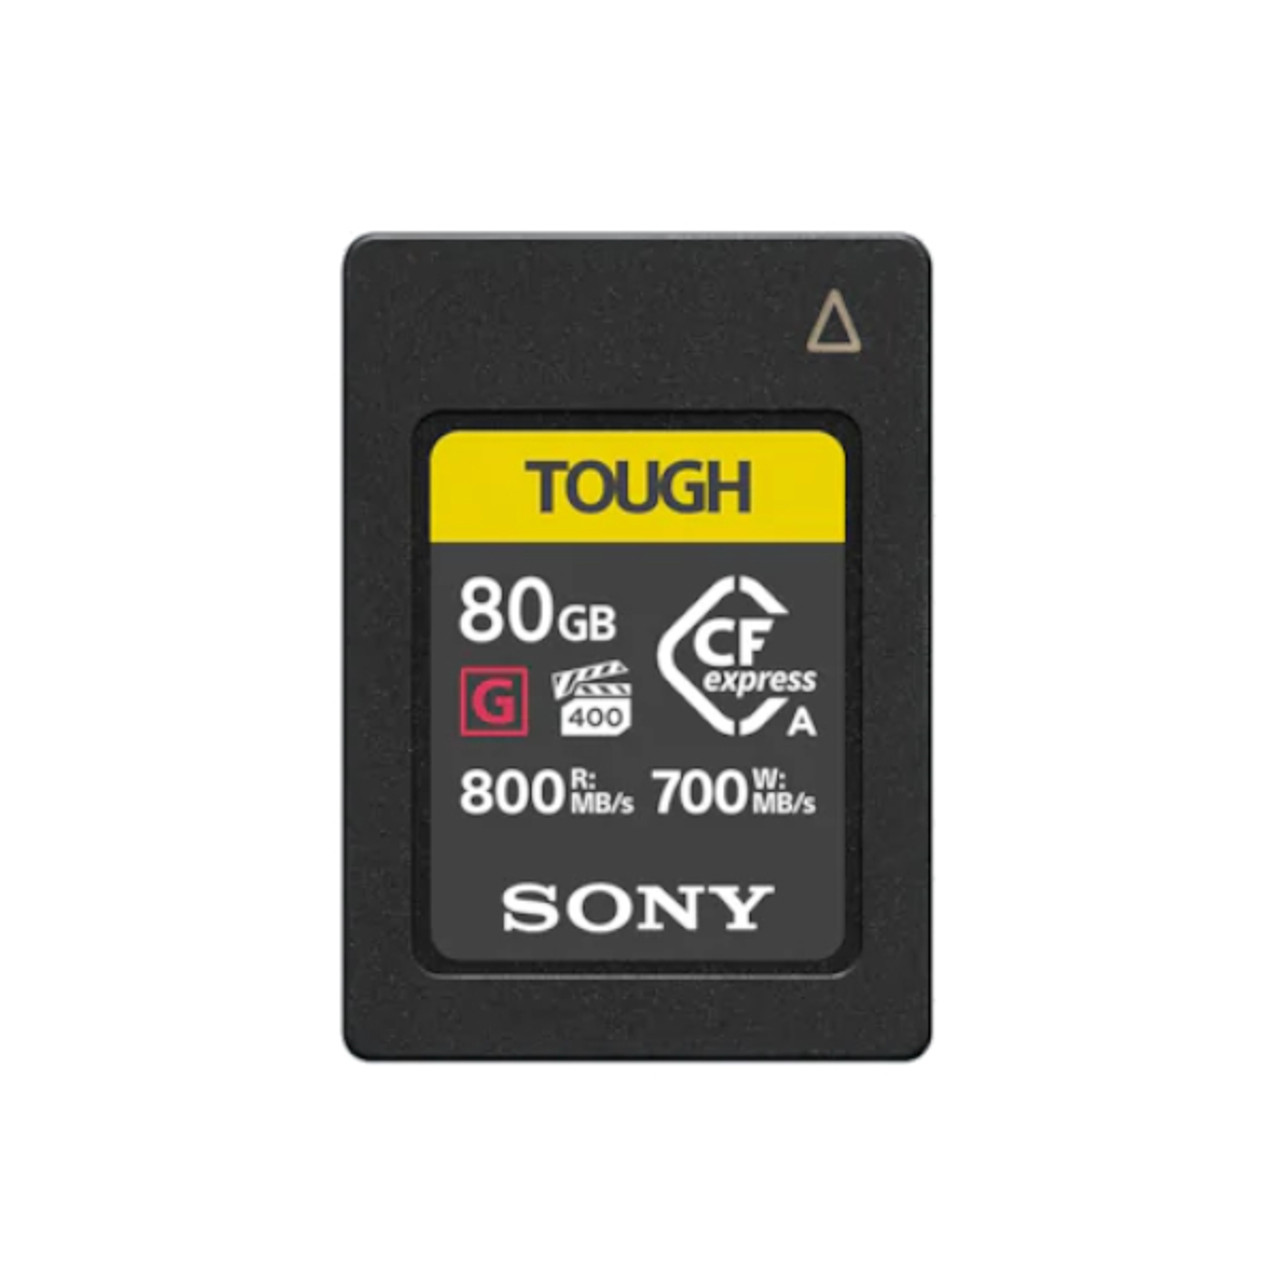 Sony CEAG 80GB CFexpress Card